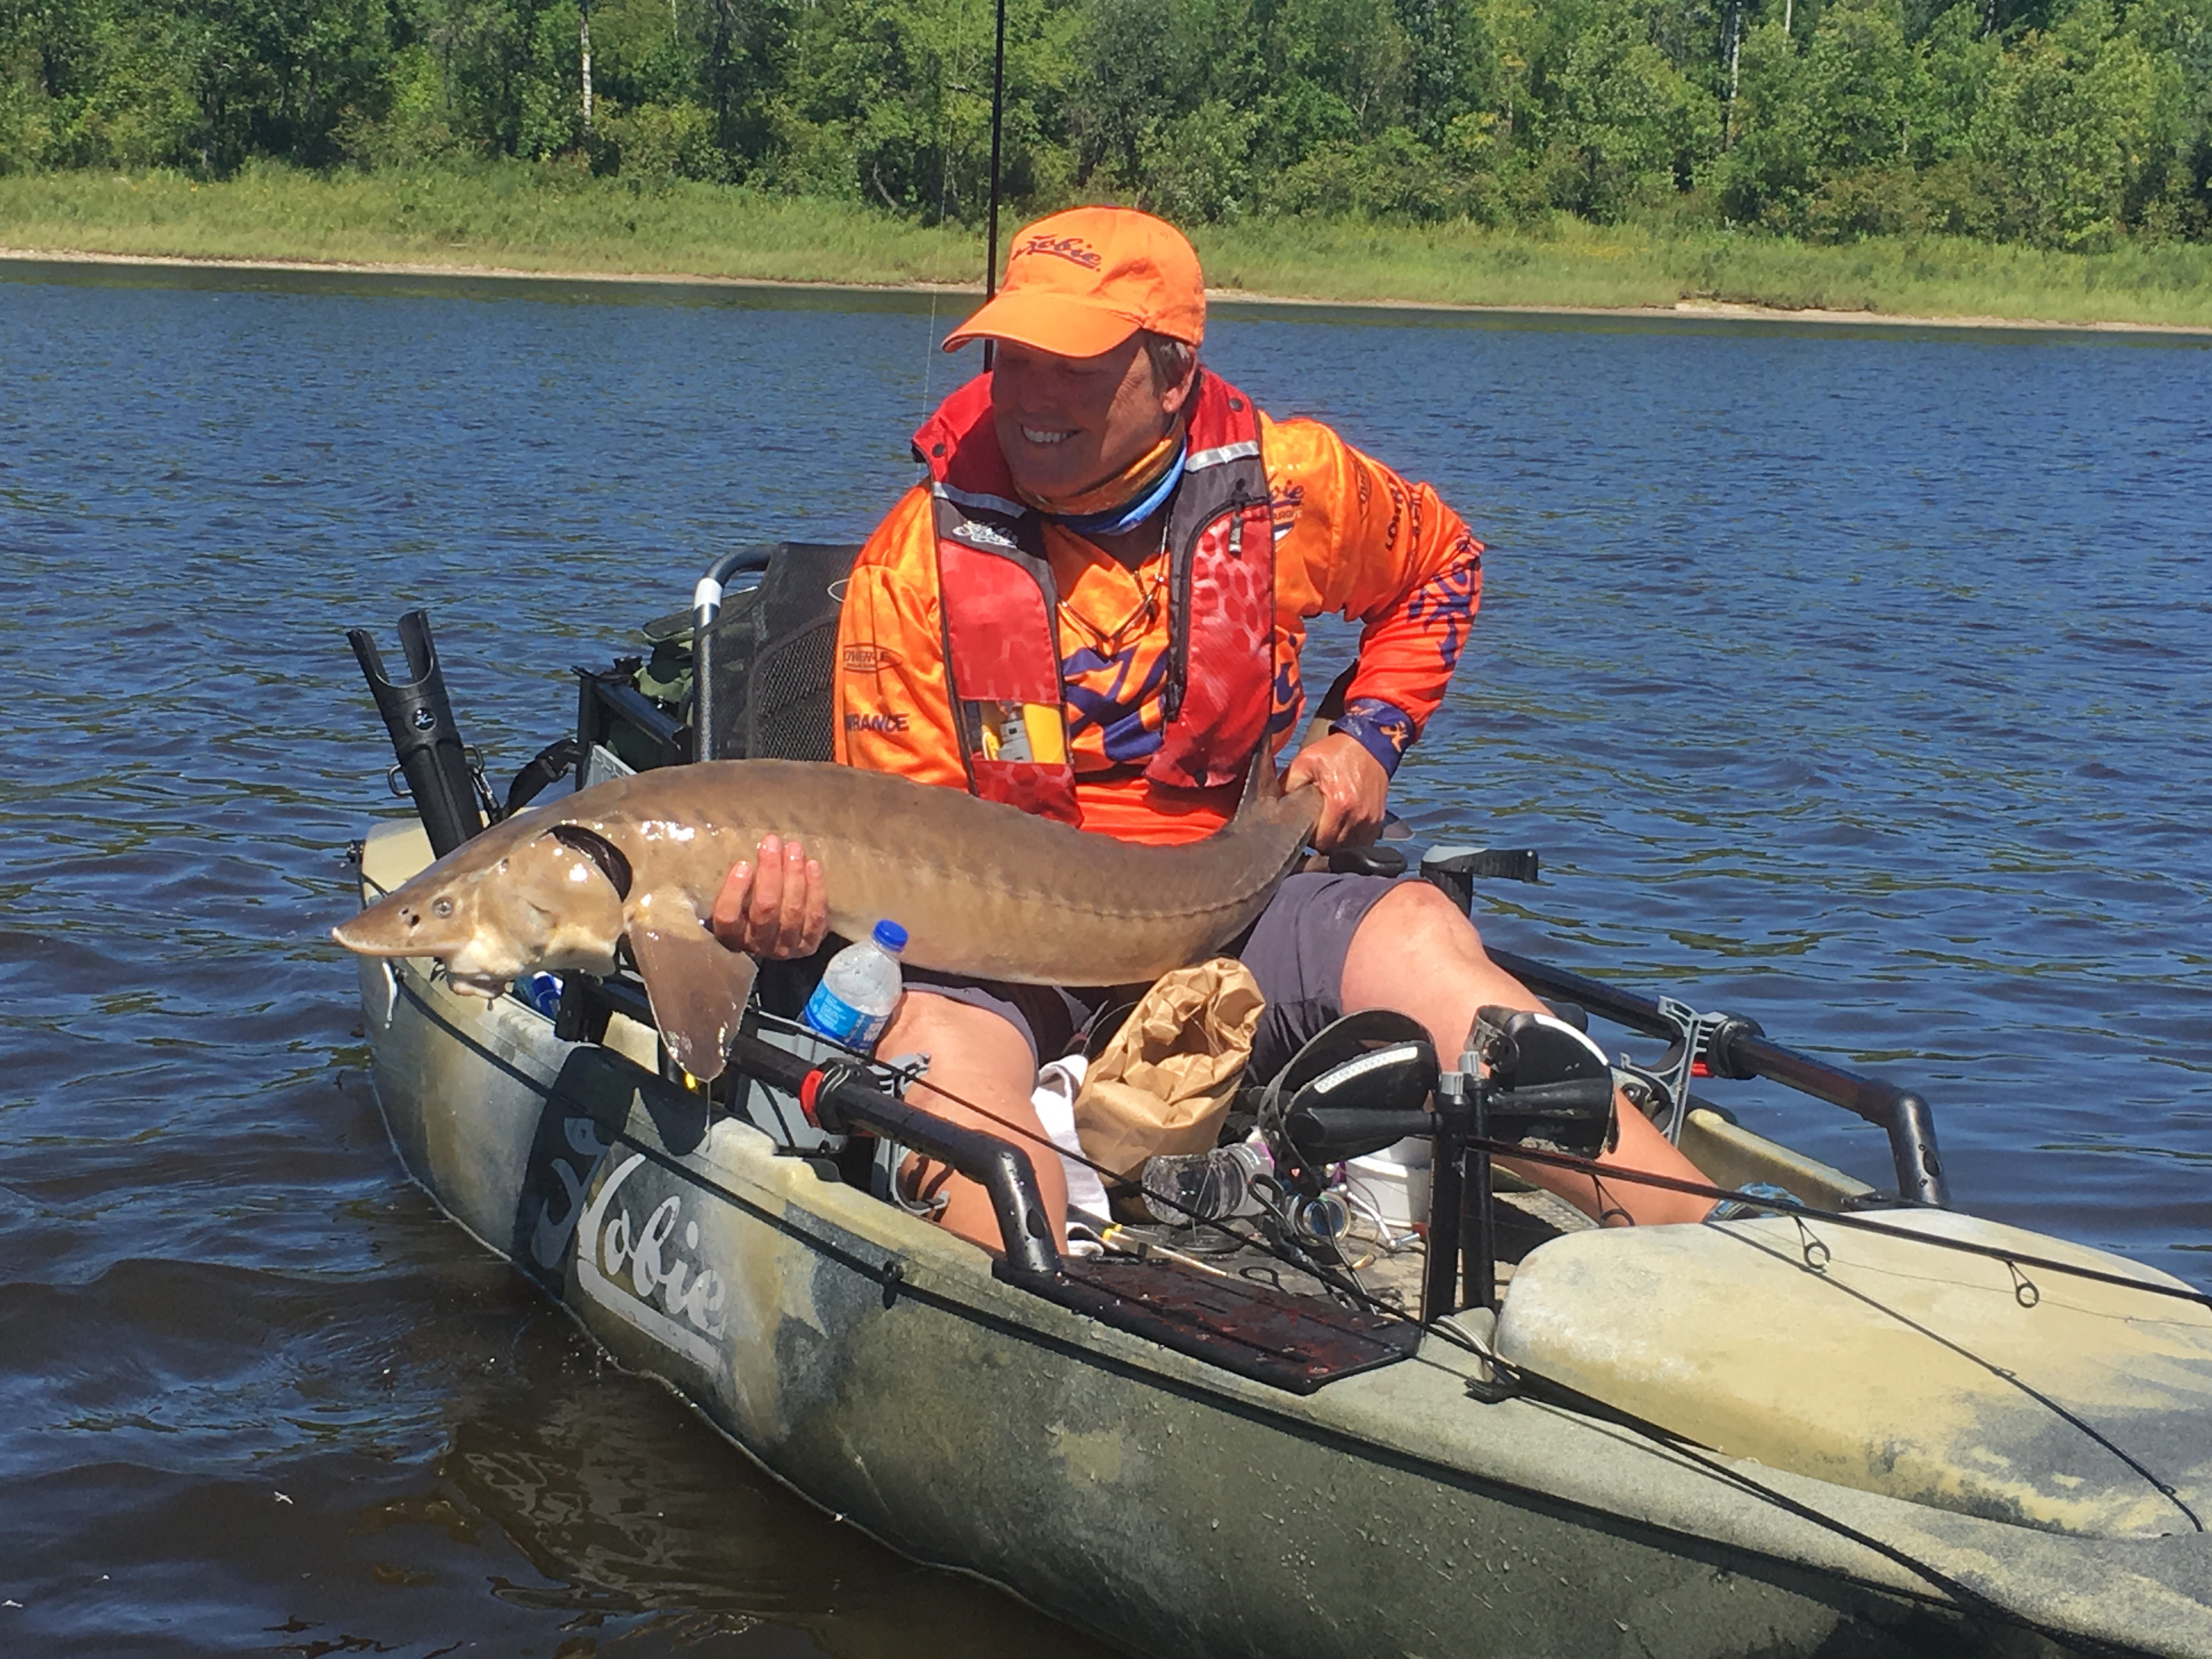 Kayak angling for sturgeon brings new sport to the Northwoods